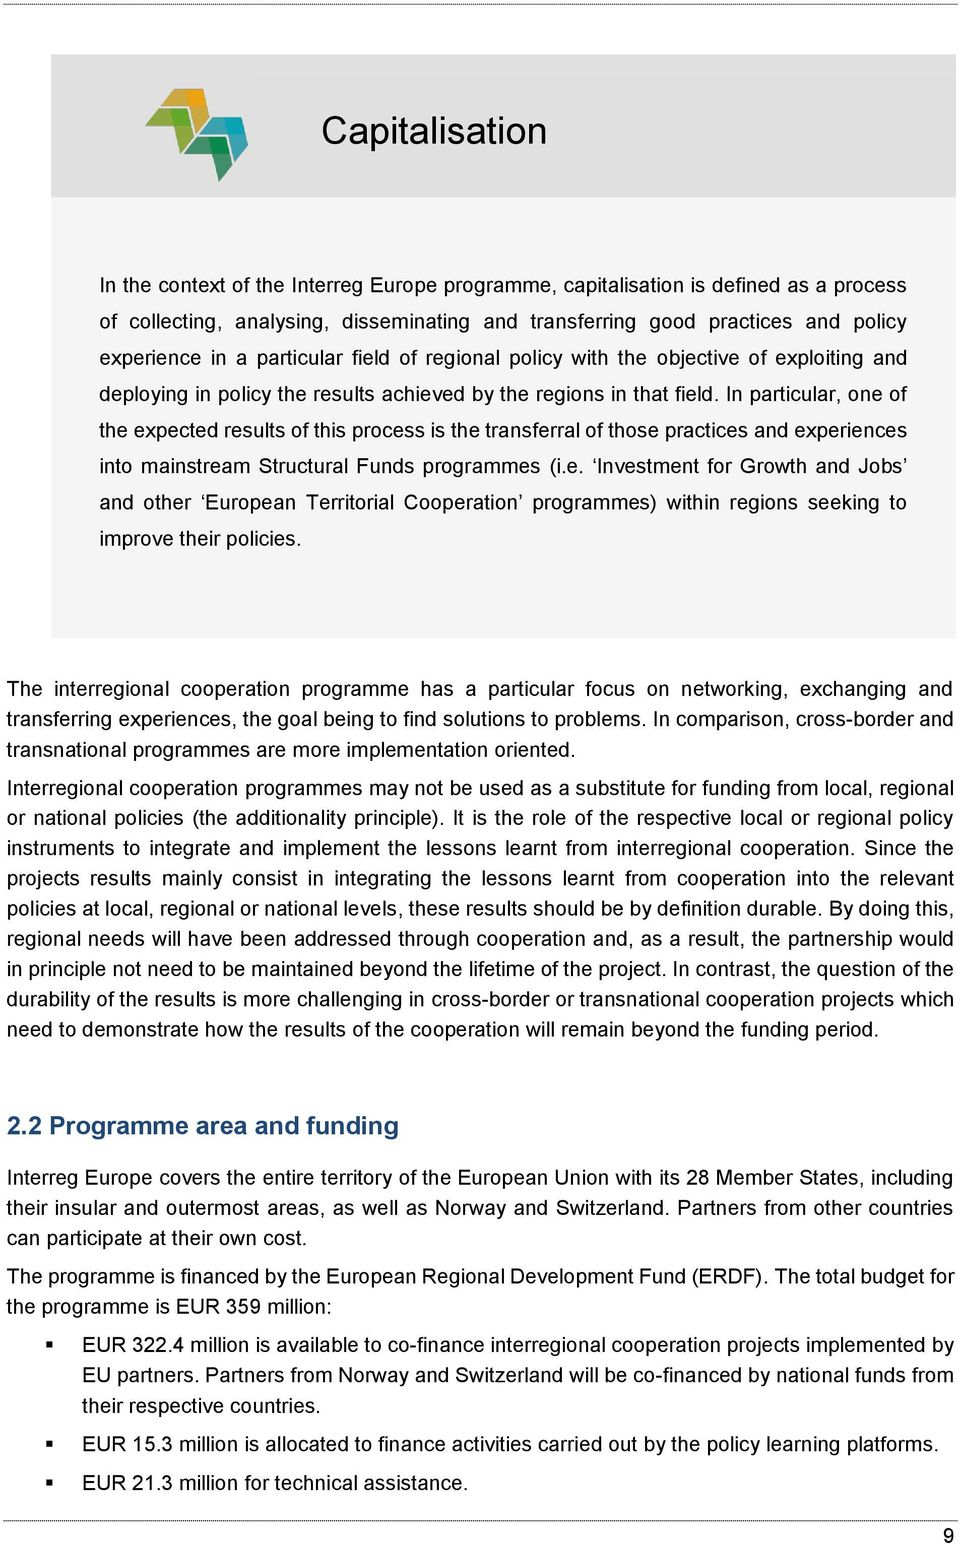 In particular, one of the expected results of this process is the transferral of those practices and experiences into mainstream Structural Funds programmes (i.e. Investment for Growth and Jobs and other European Territorial Cooperation programmes) within regions seeking to improve their policies.